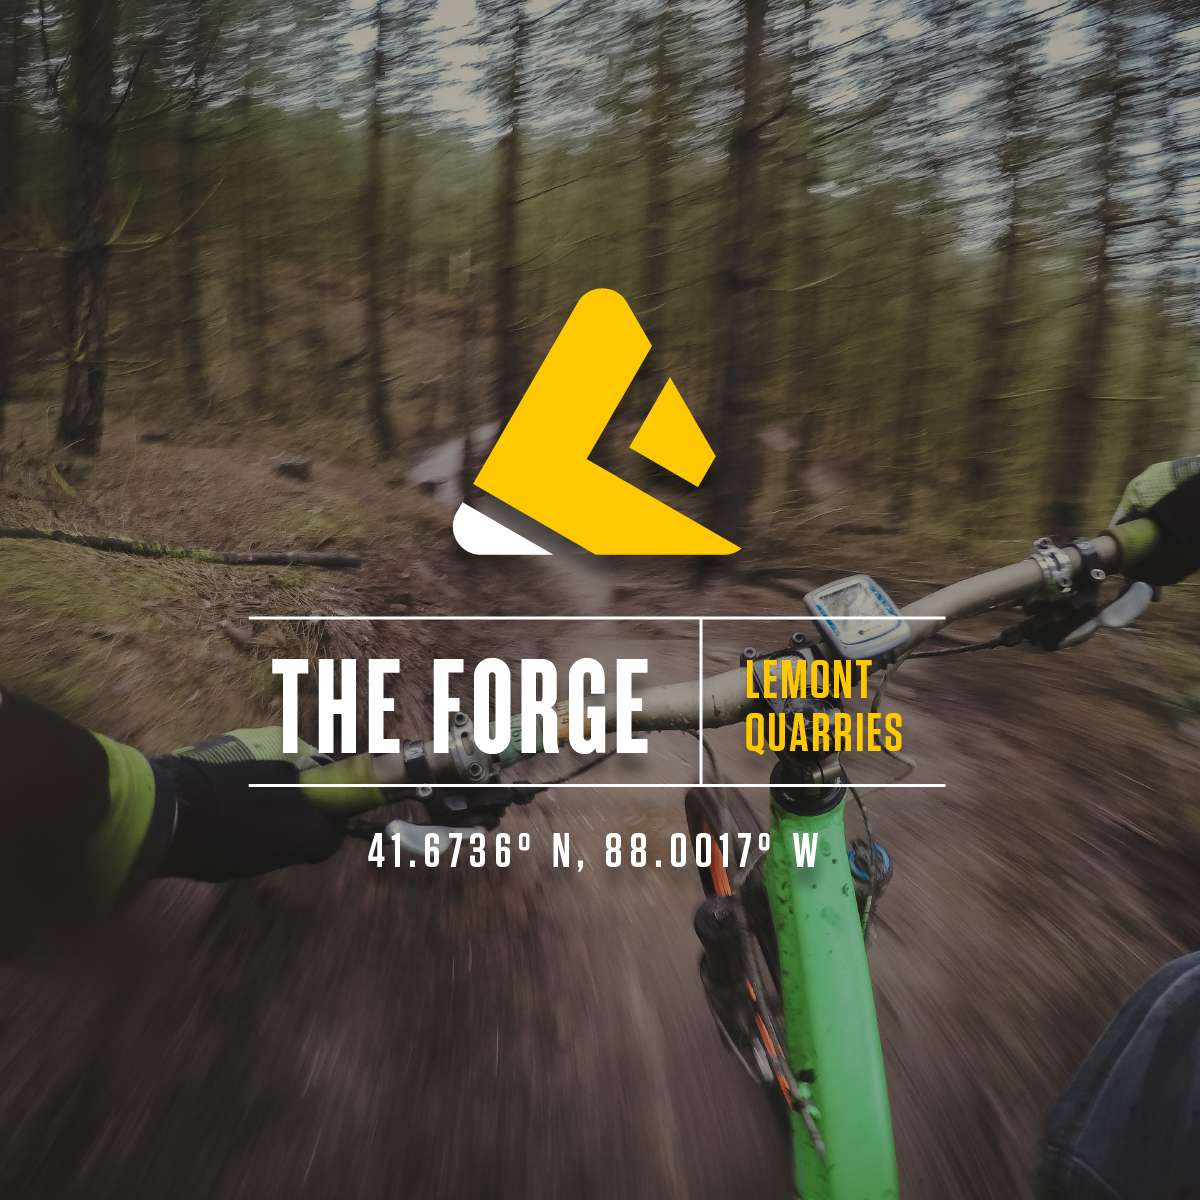 Logo design for The Forge, set over photo of bike in motion